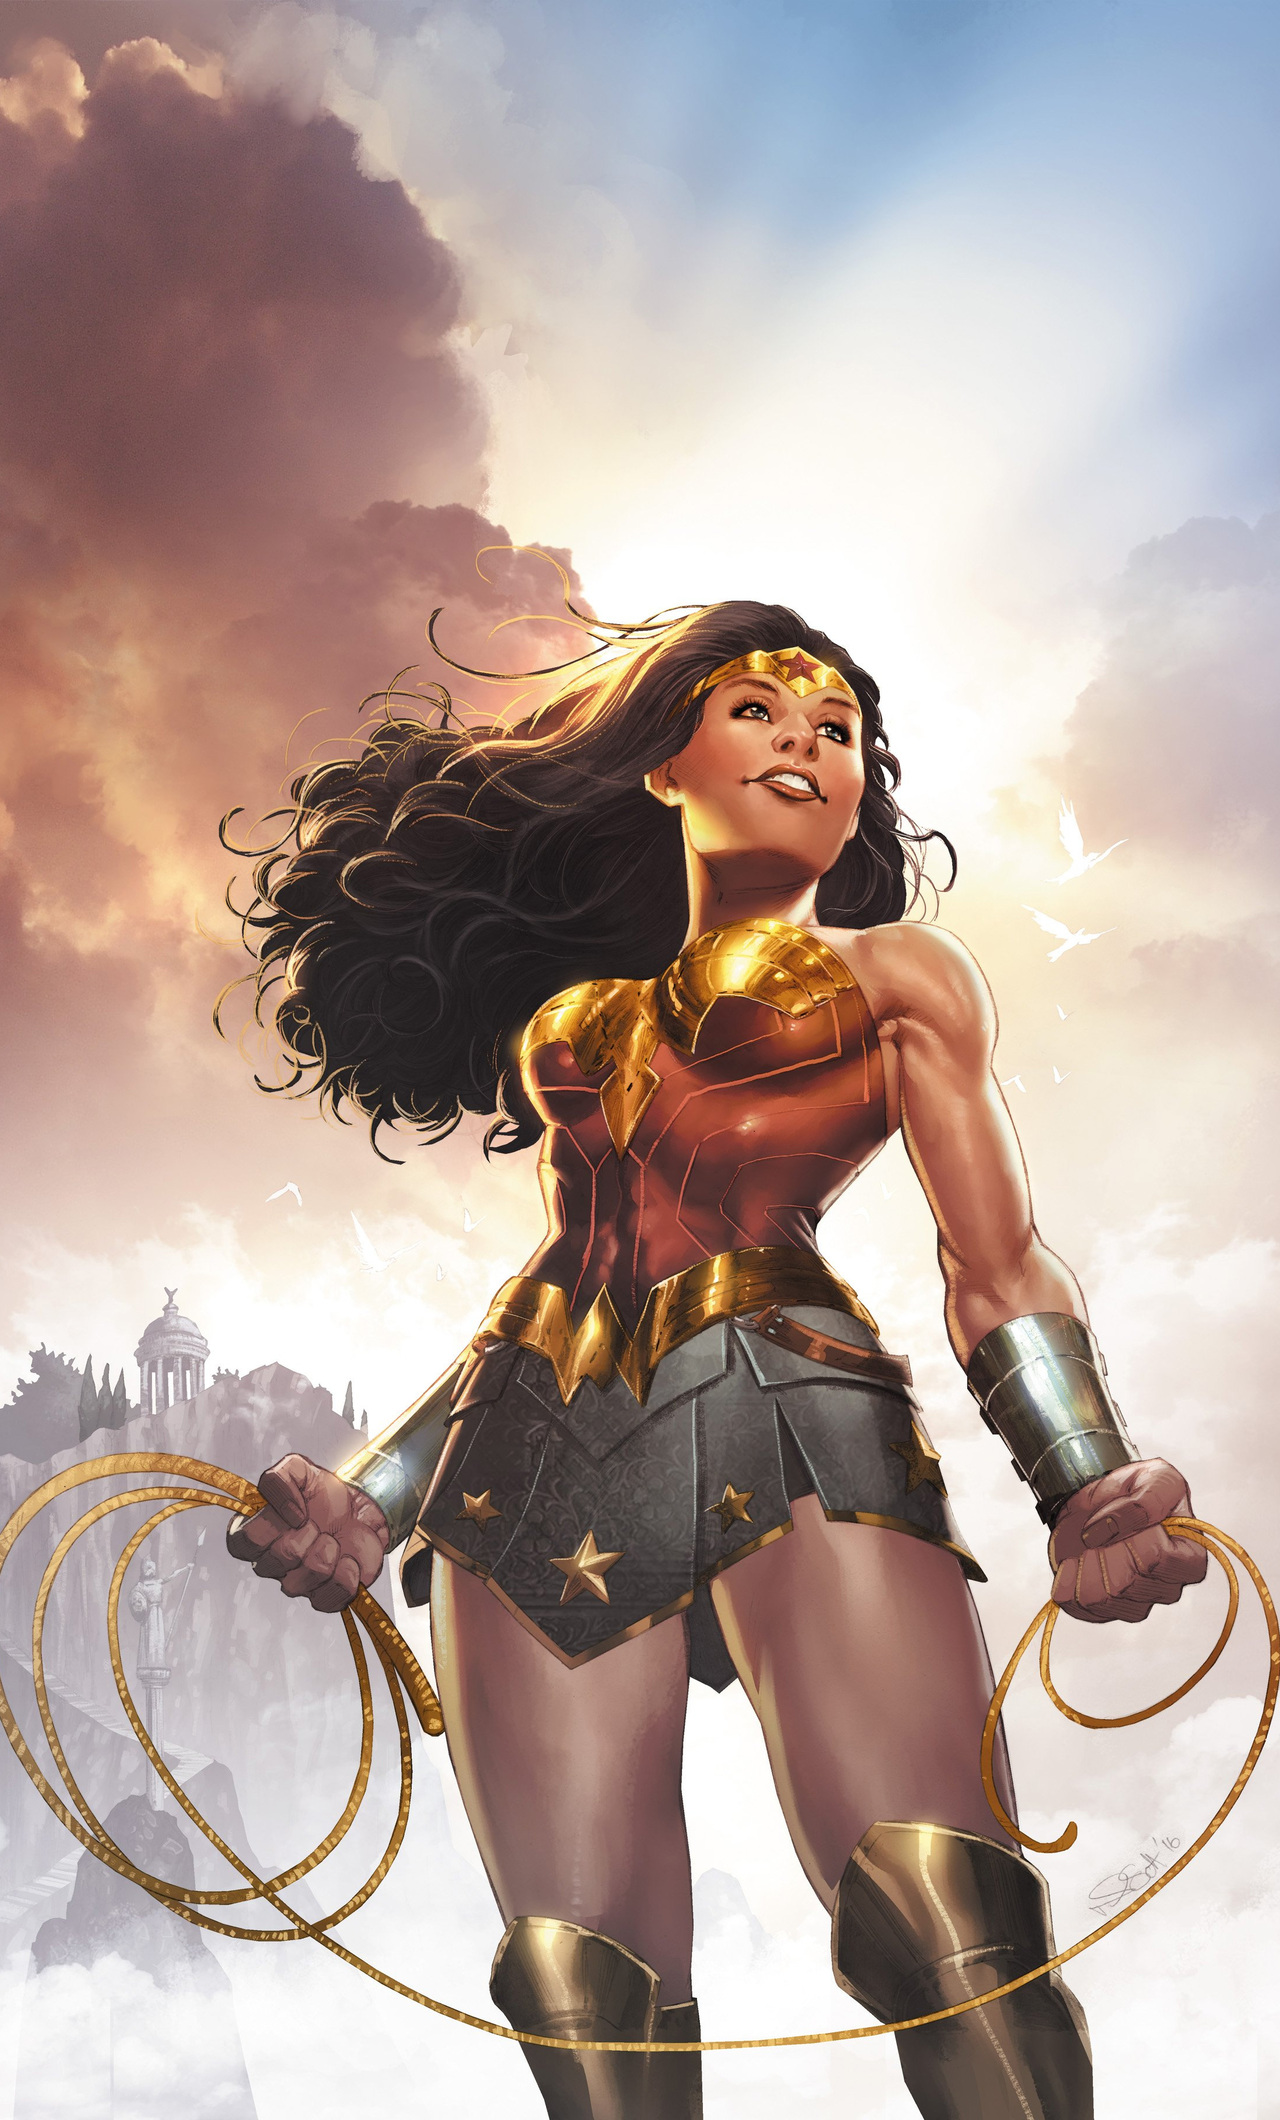 1280x2120 Wonder Woman Dc Rebirth Iphone 6 Hd 4k Wallpapers Images